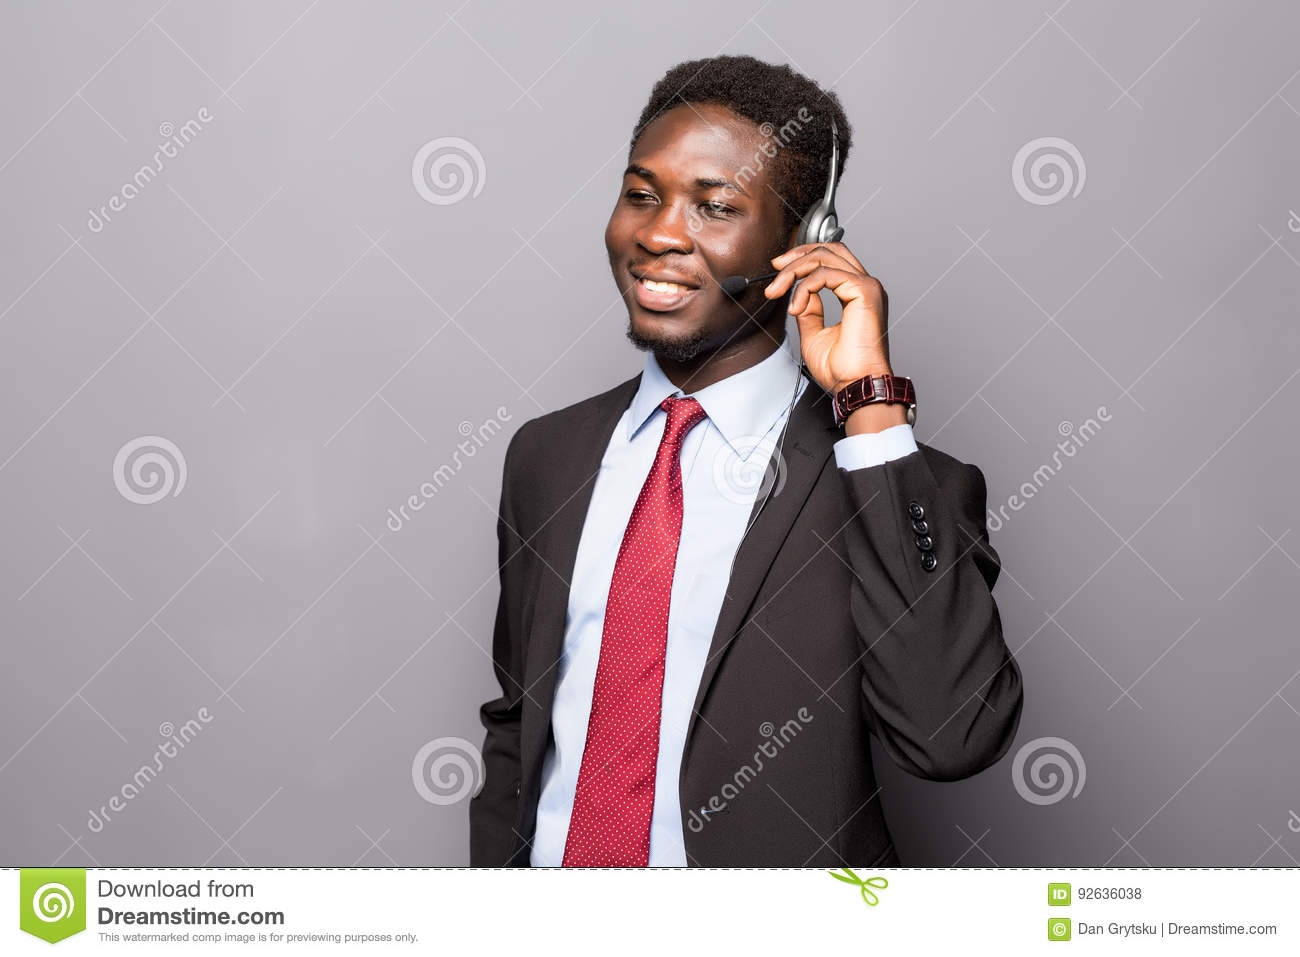 Closeup portrait of a young male customer service representative or call centre worker or operator, support staff speaking with he